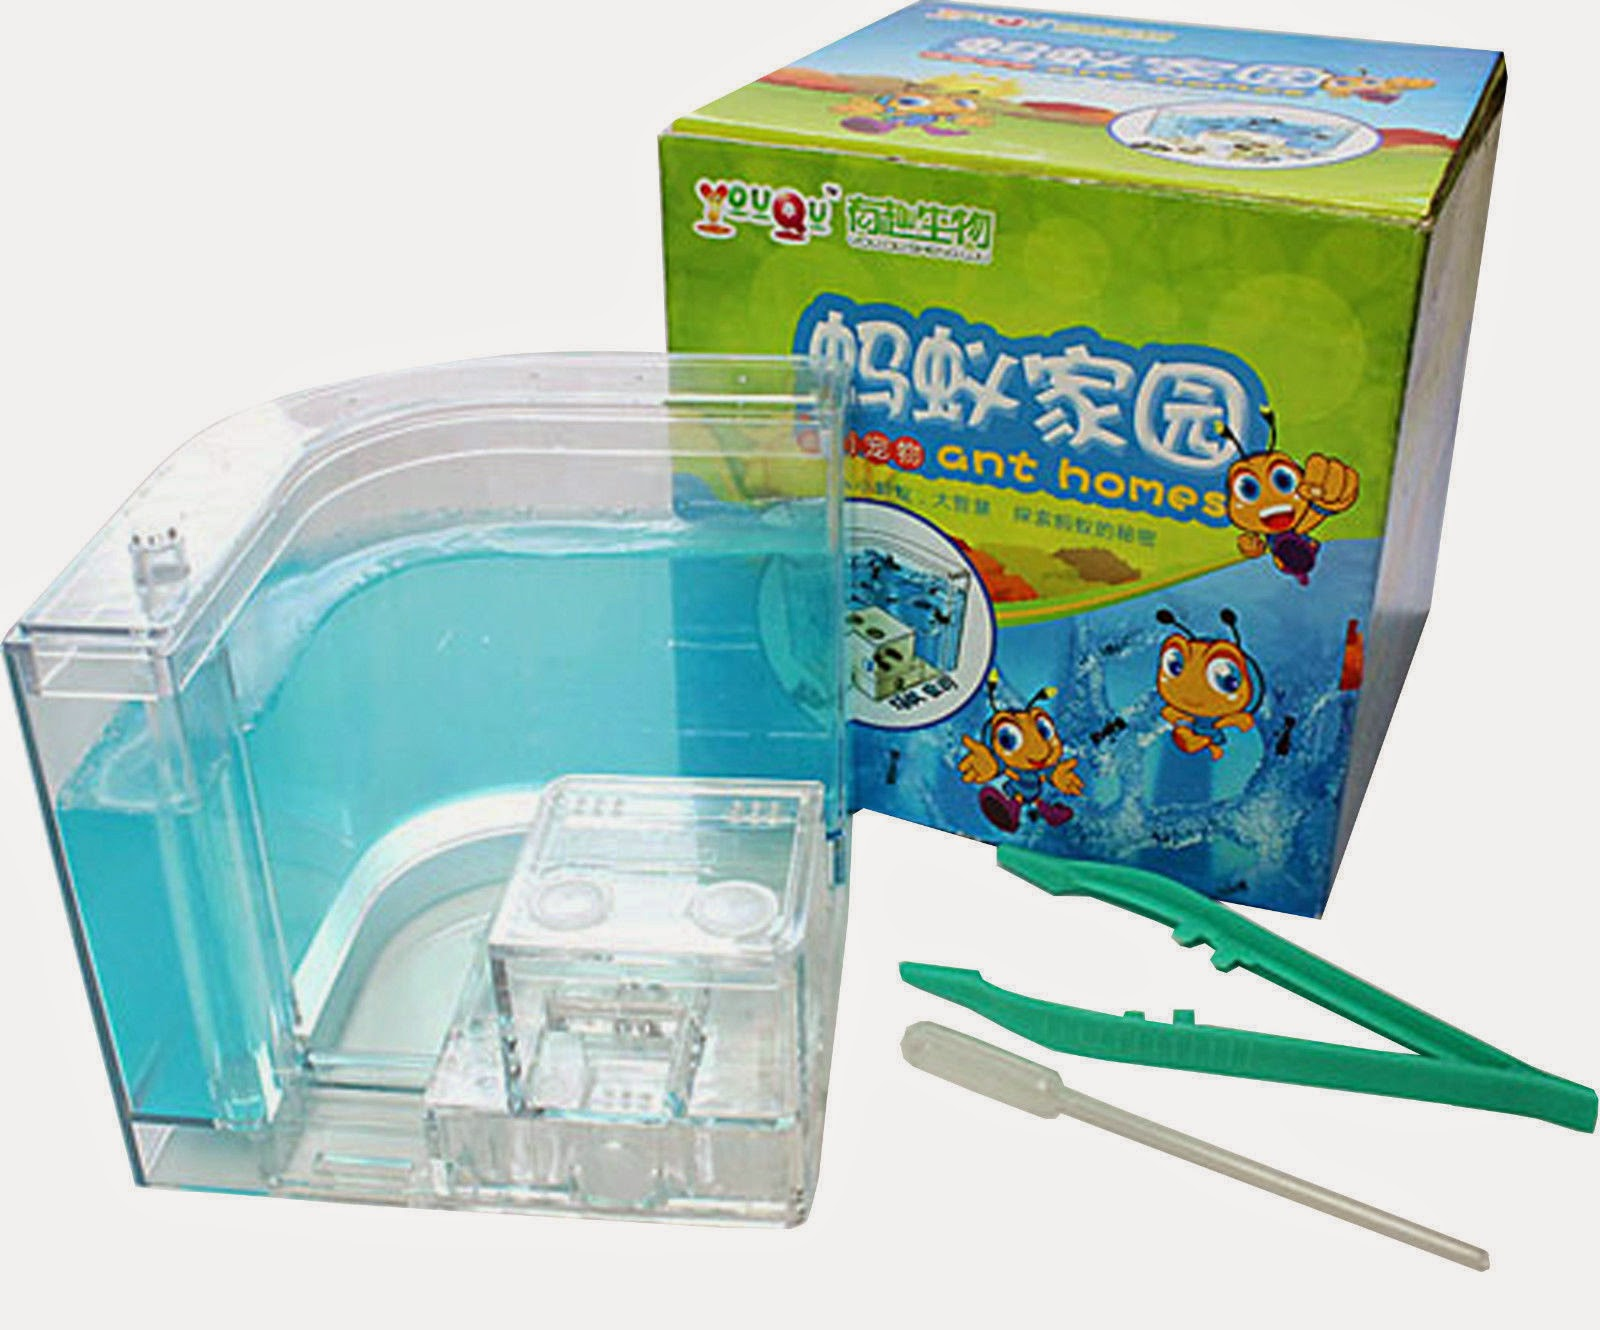 Ant Farm Gel Maze 3D Educational Nursery Live Feeding System Ant Novelty Habitat